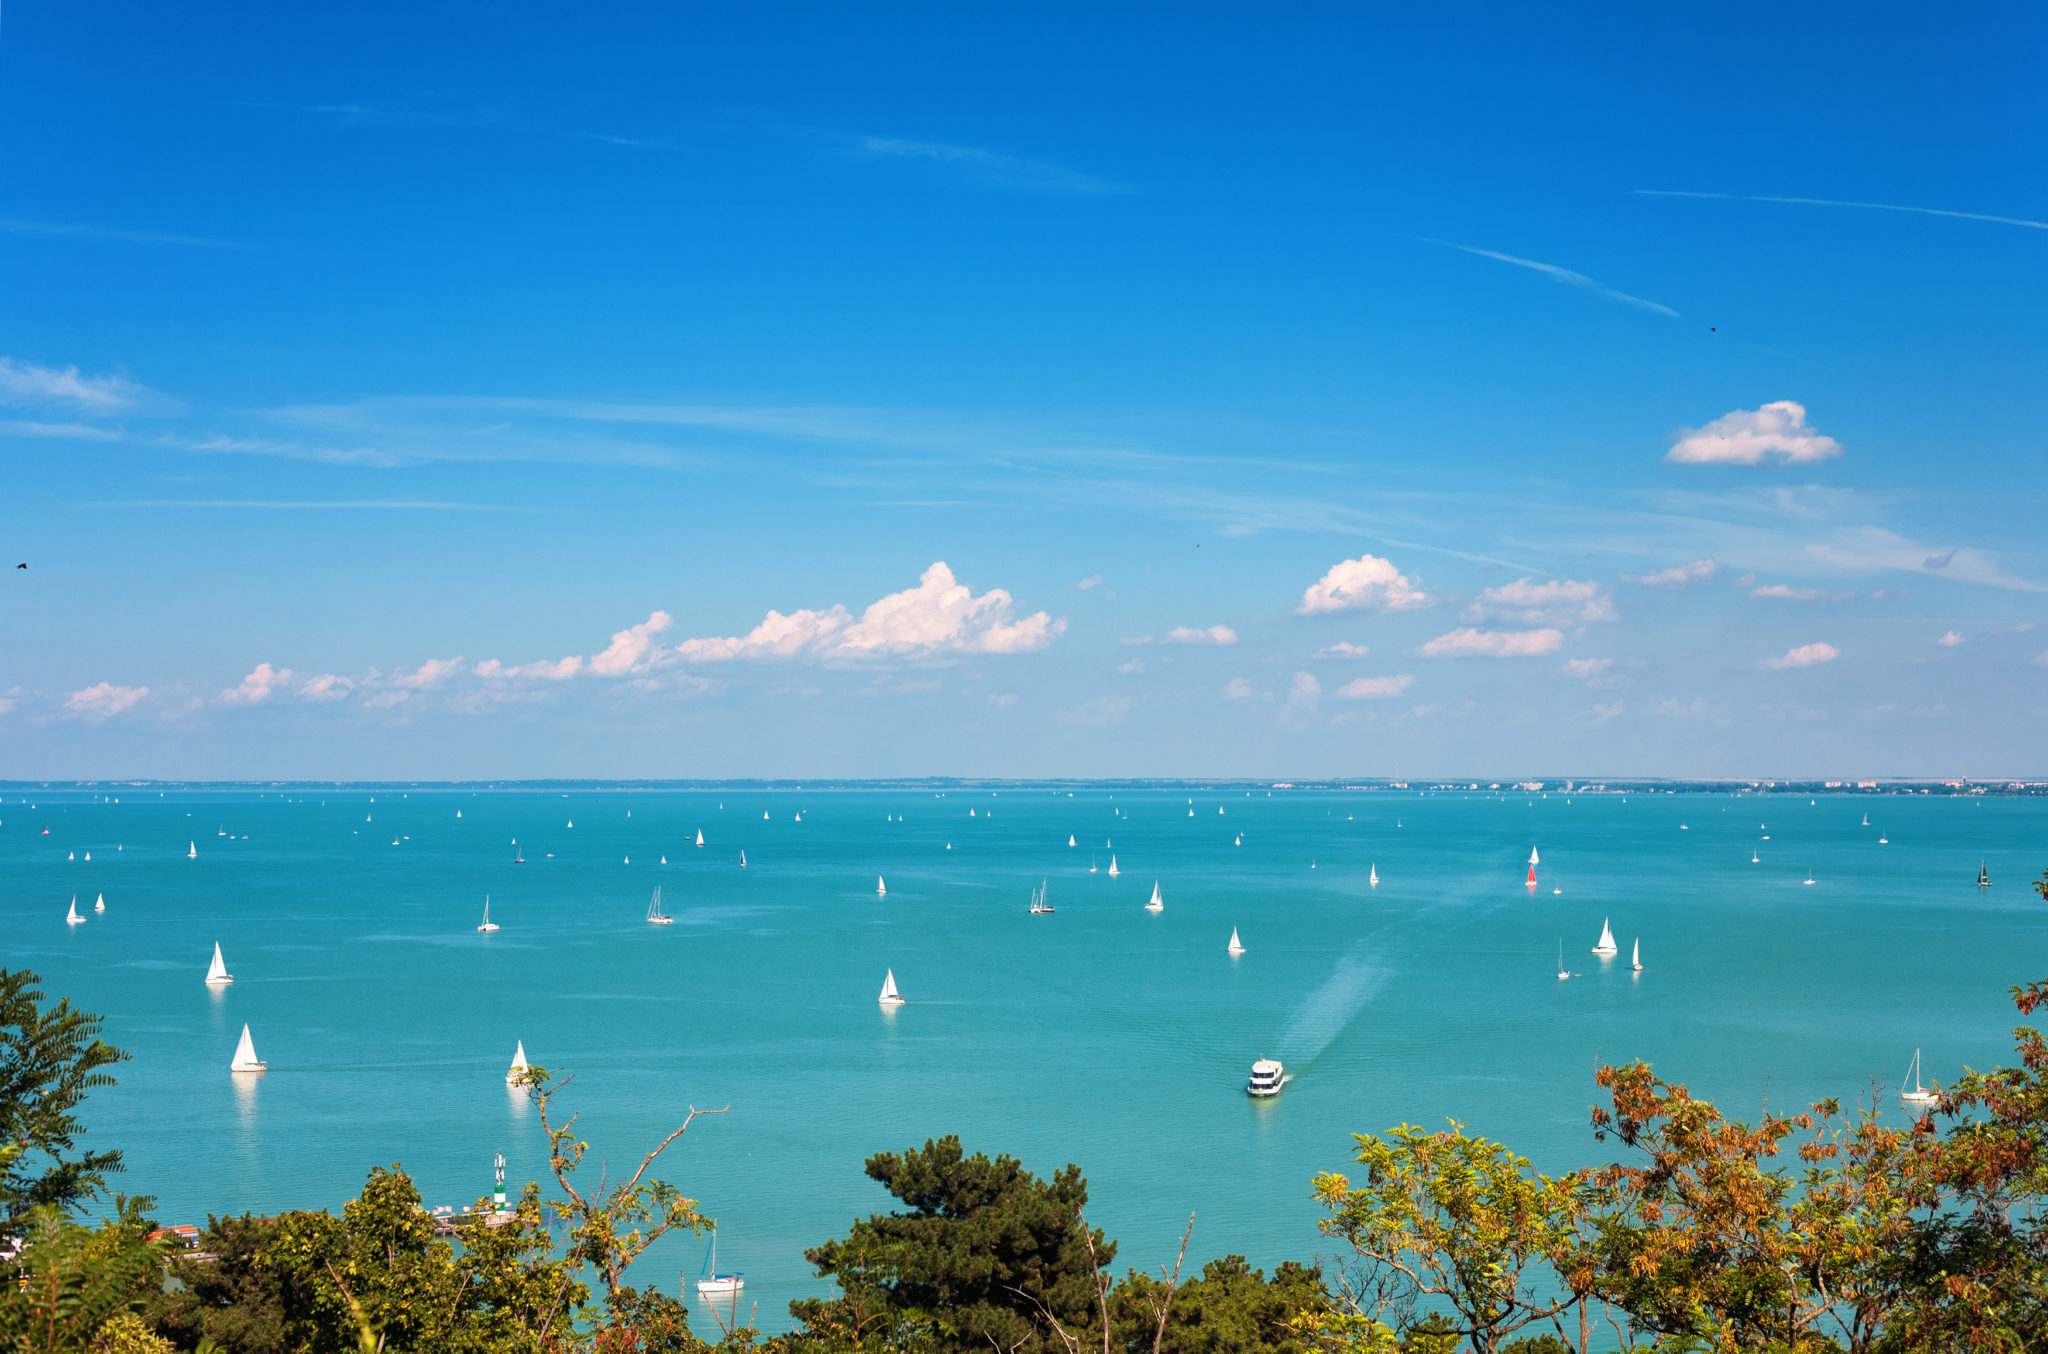 View of Lake Balaton with lots of ships from Tihany village in Hungary